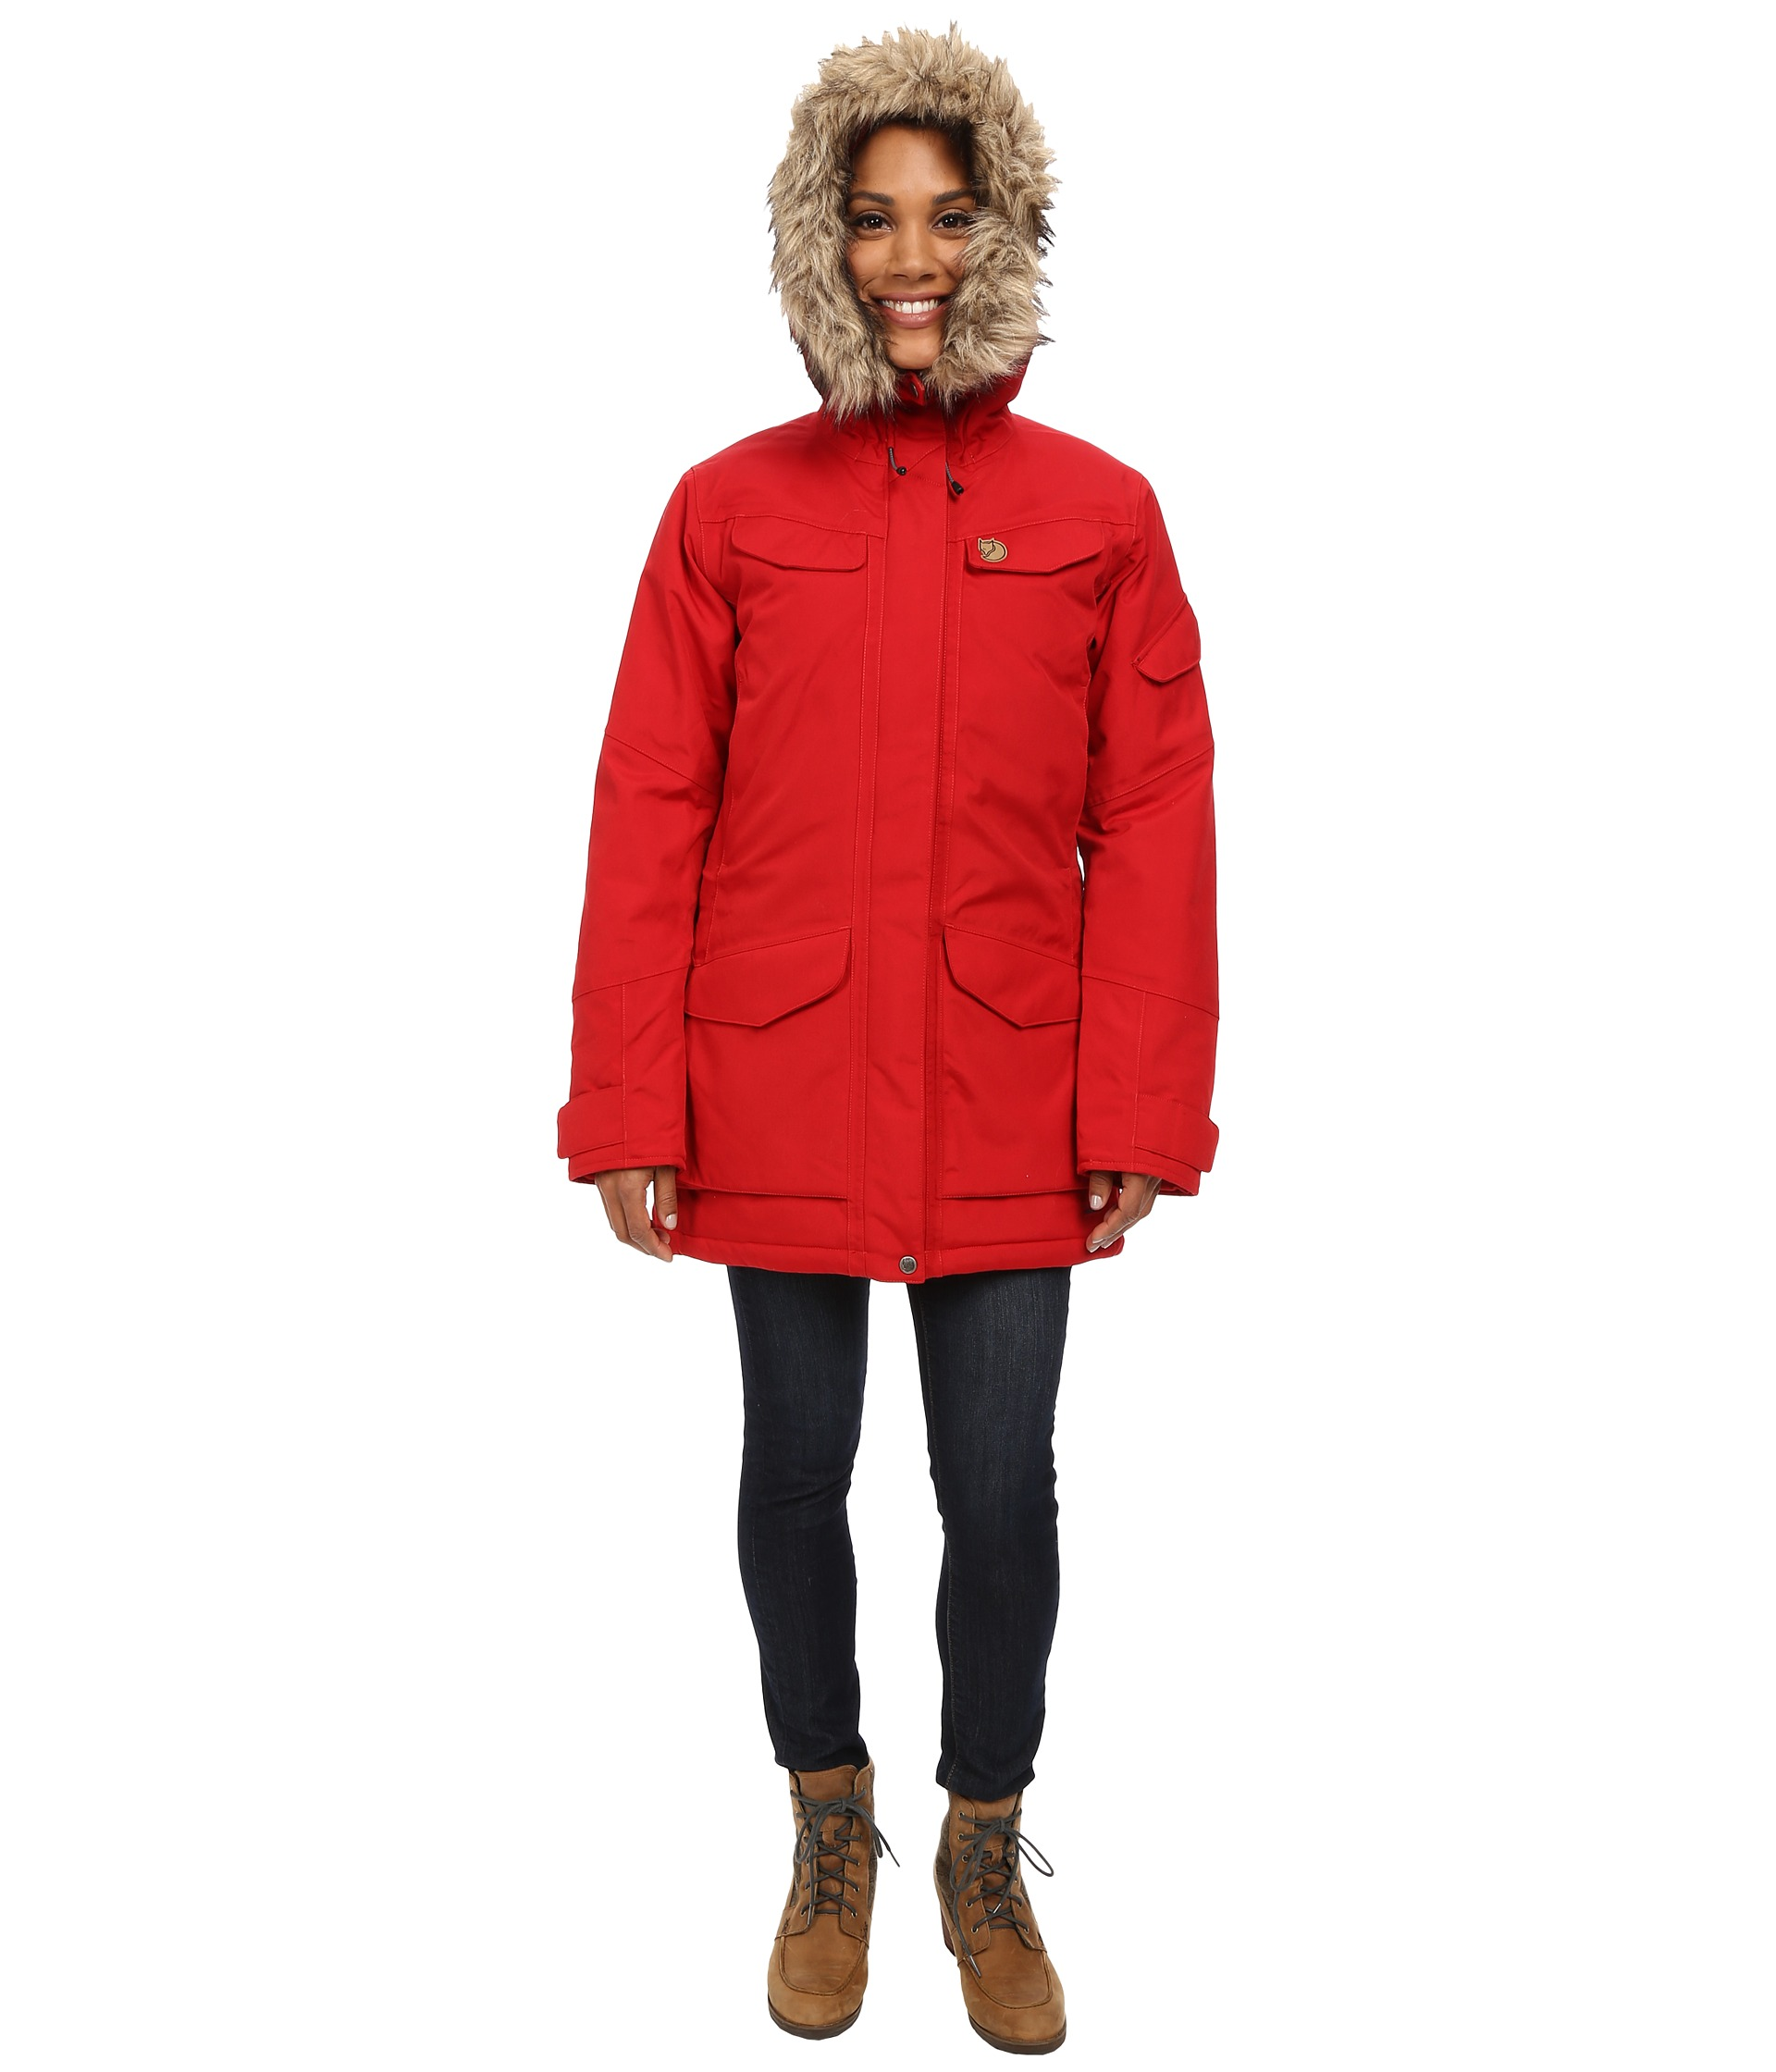 fj llr ven nuuk womens parka ox red pictures to pin on. Black Bedroom Furniture Sets. Home Design Ideas